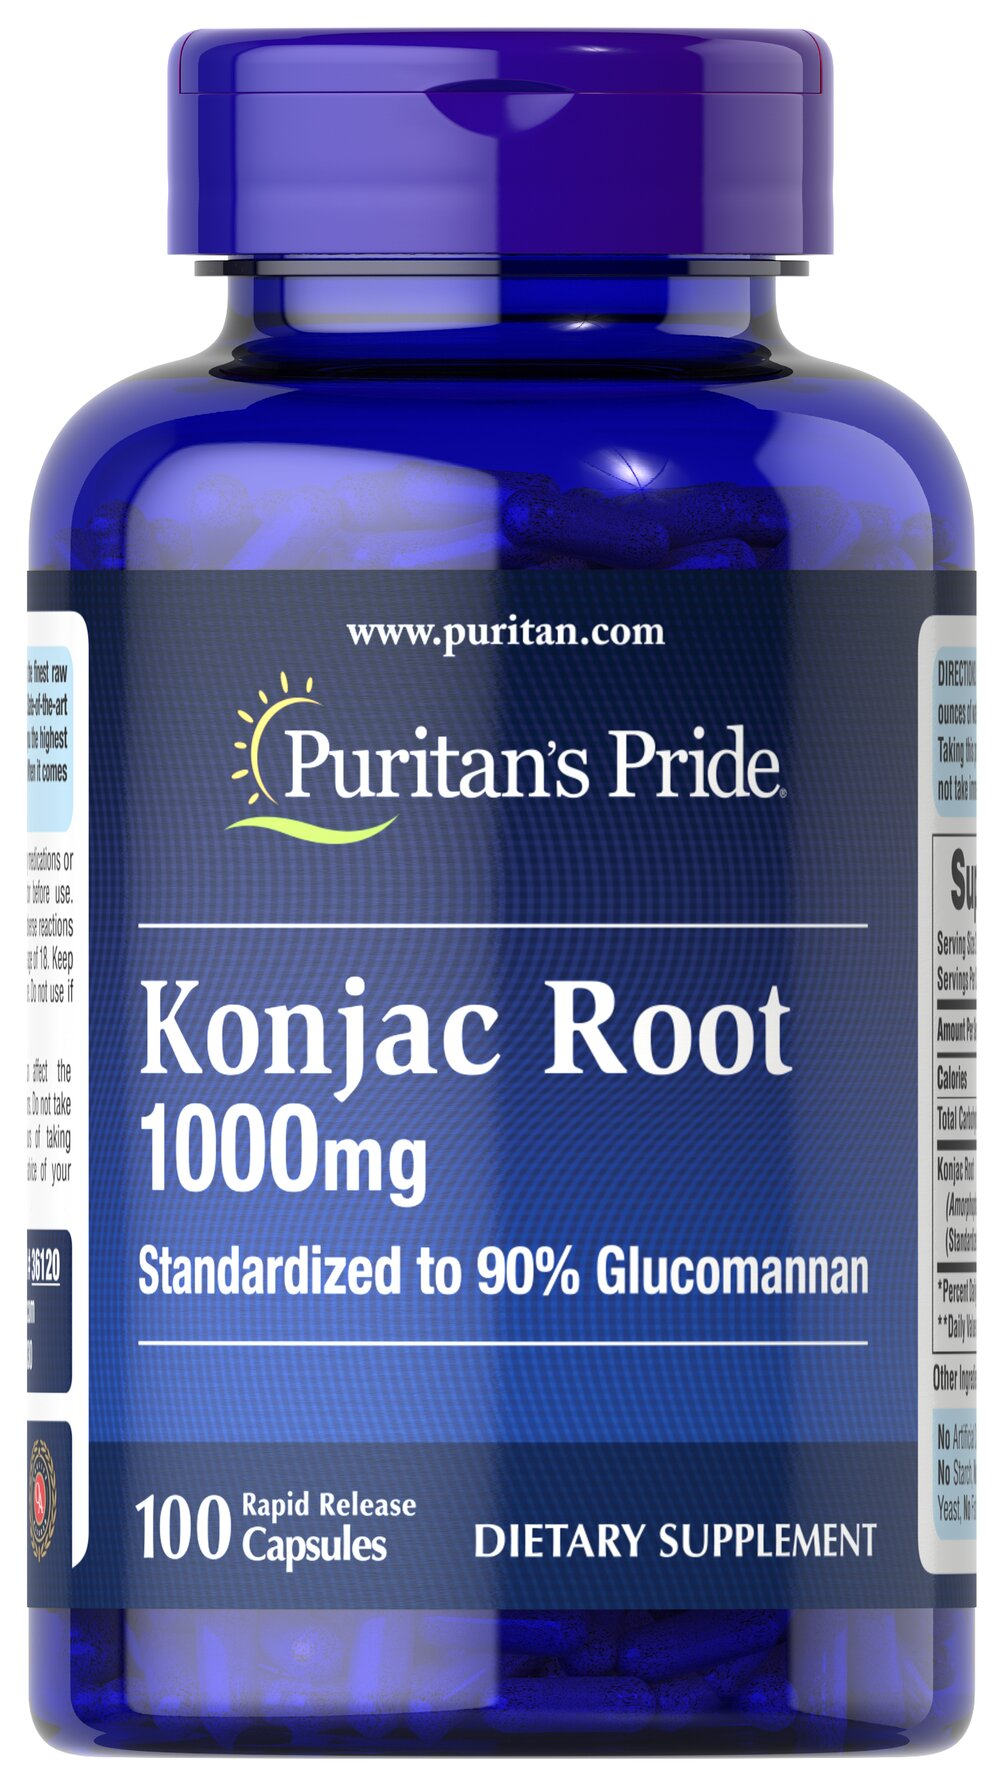 Konjac Root Glucomannan 1000 mg Thumbnail Alternate Bottle View